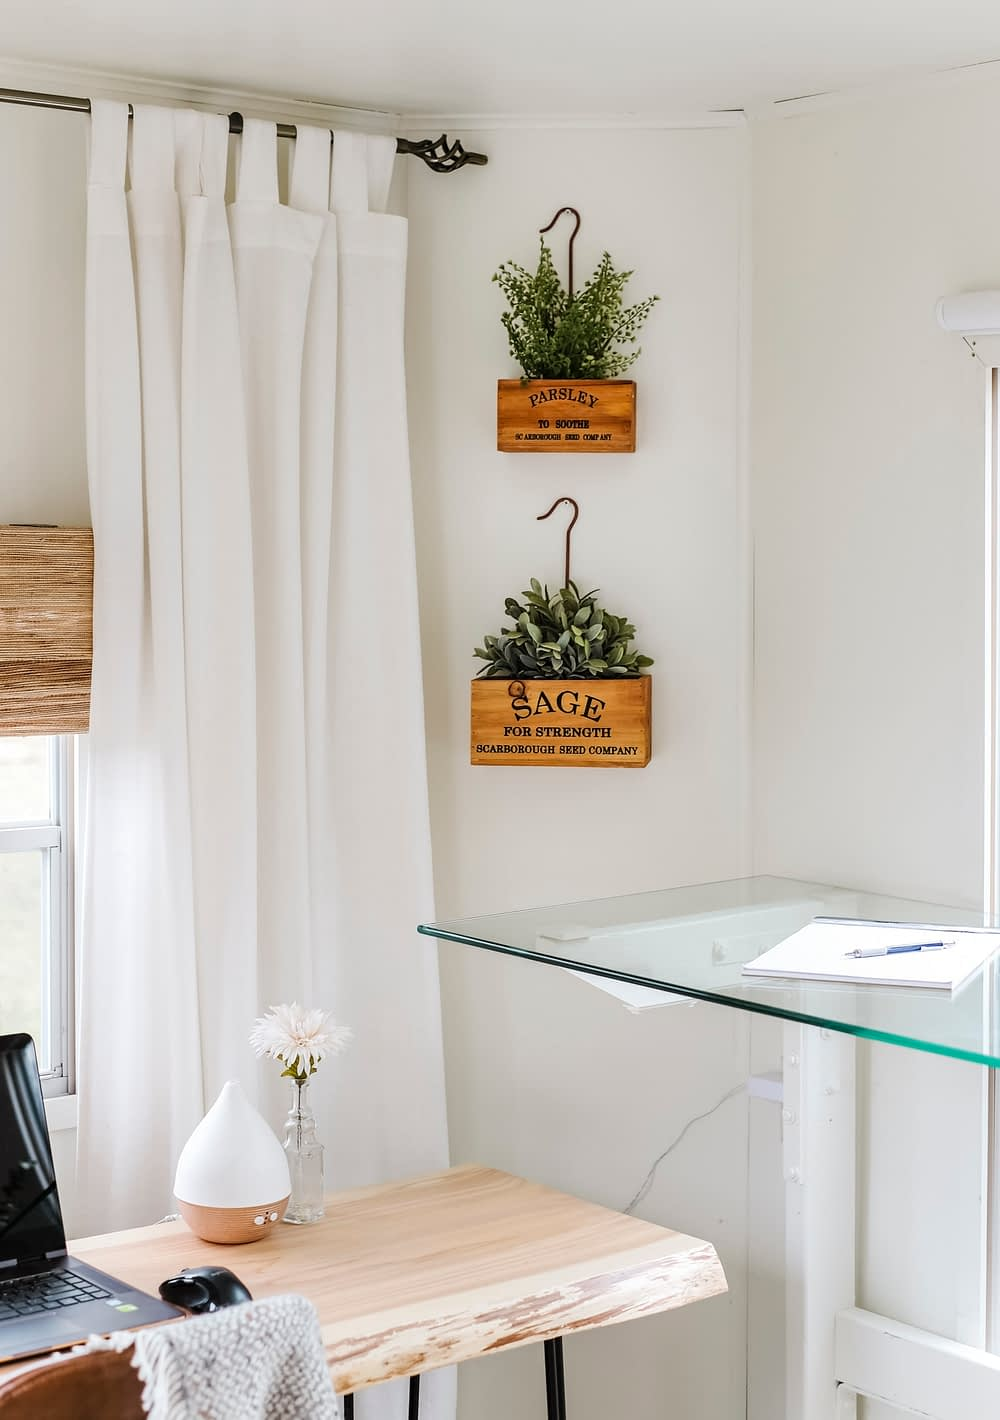 Wood herb planter boxes hung on the wall above home office desktop